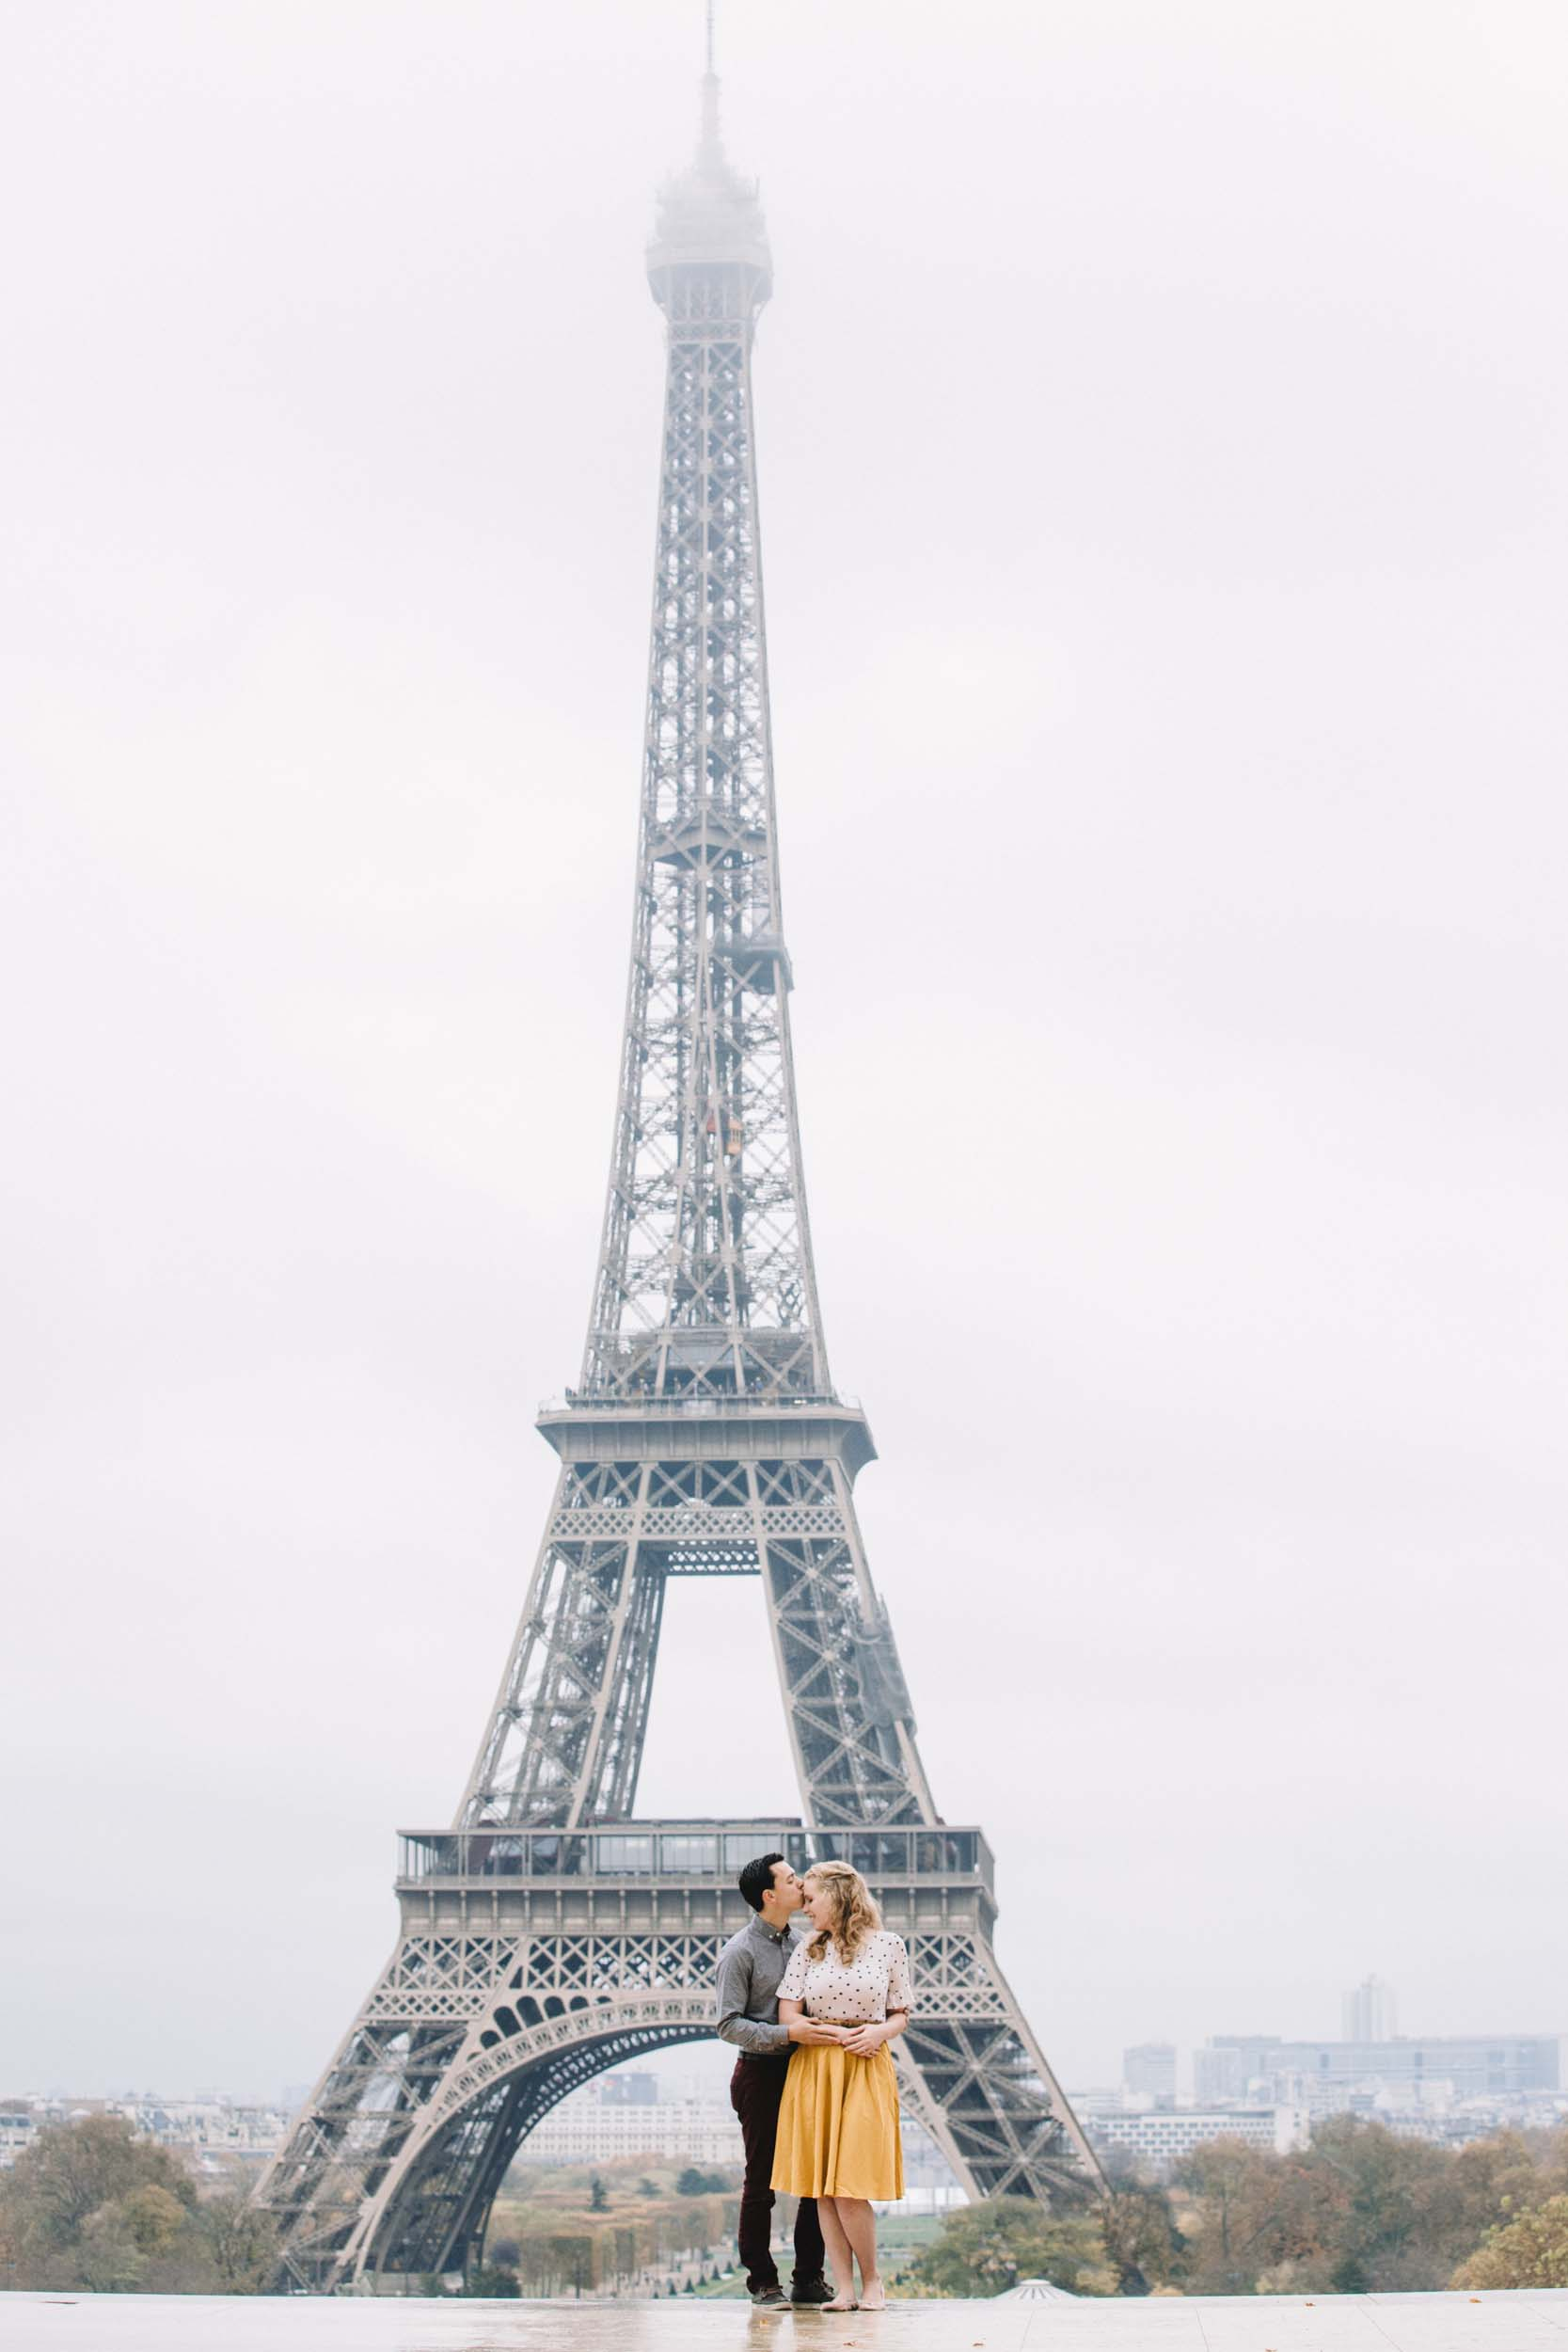 Couple holding each other and kissing with the Eiffel Tower in the background in Paris, France